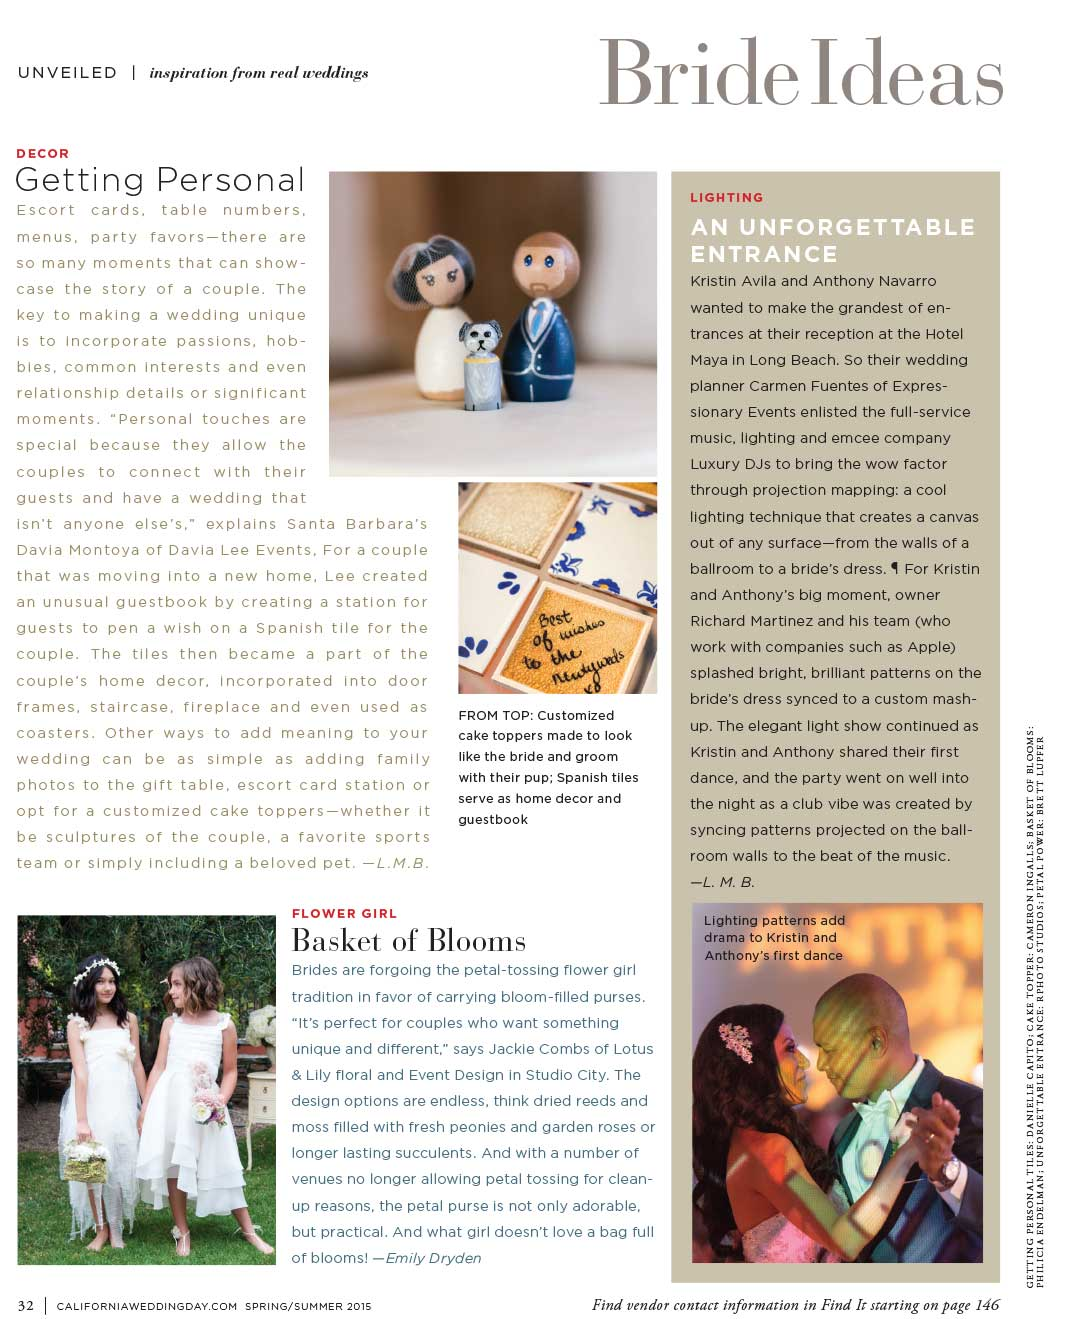 press-page-davia-lee-california-wedding-day-ss2015-p32